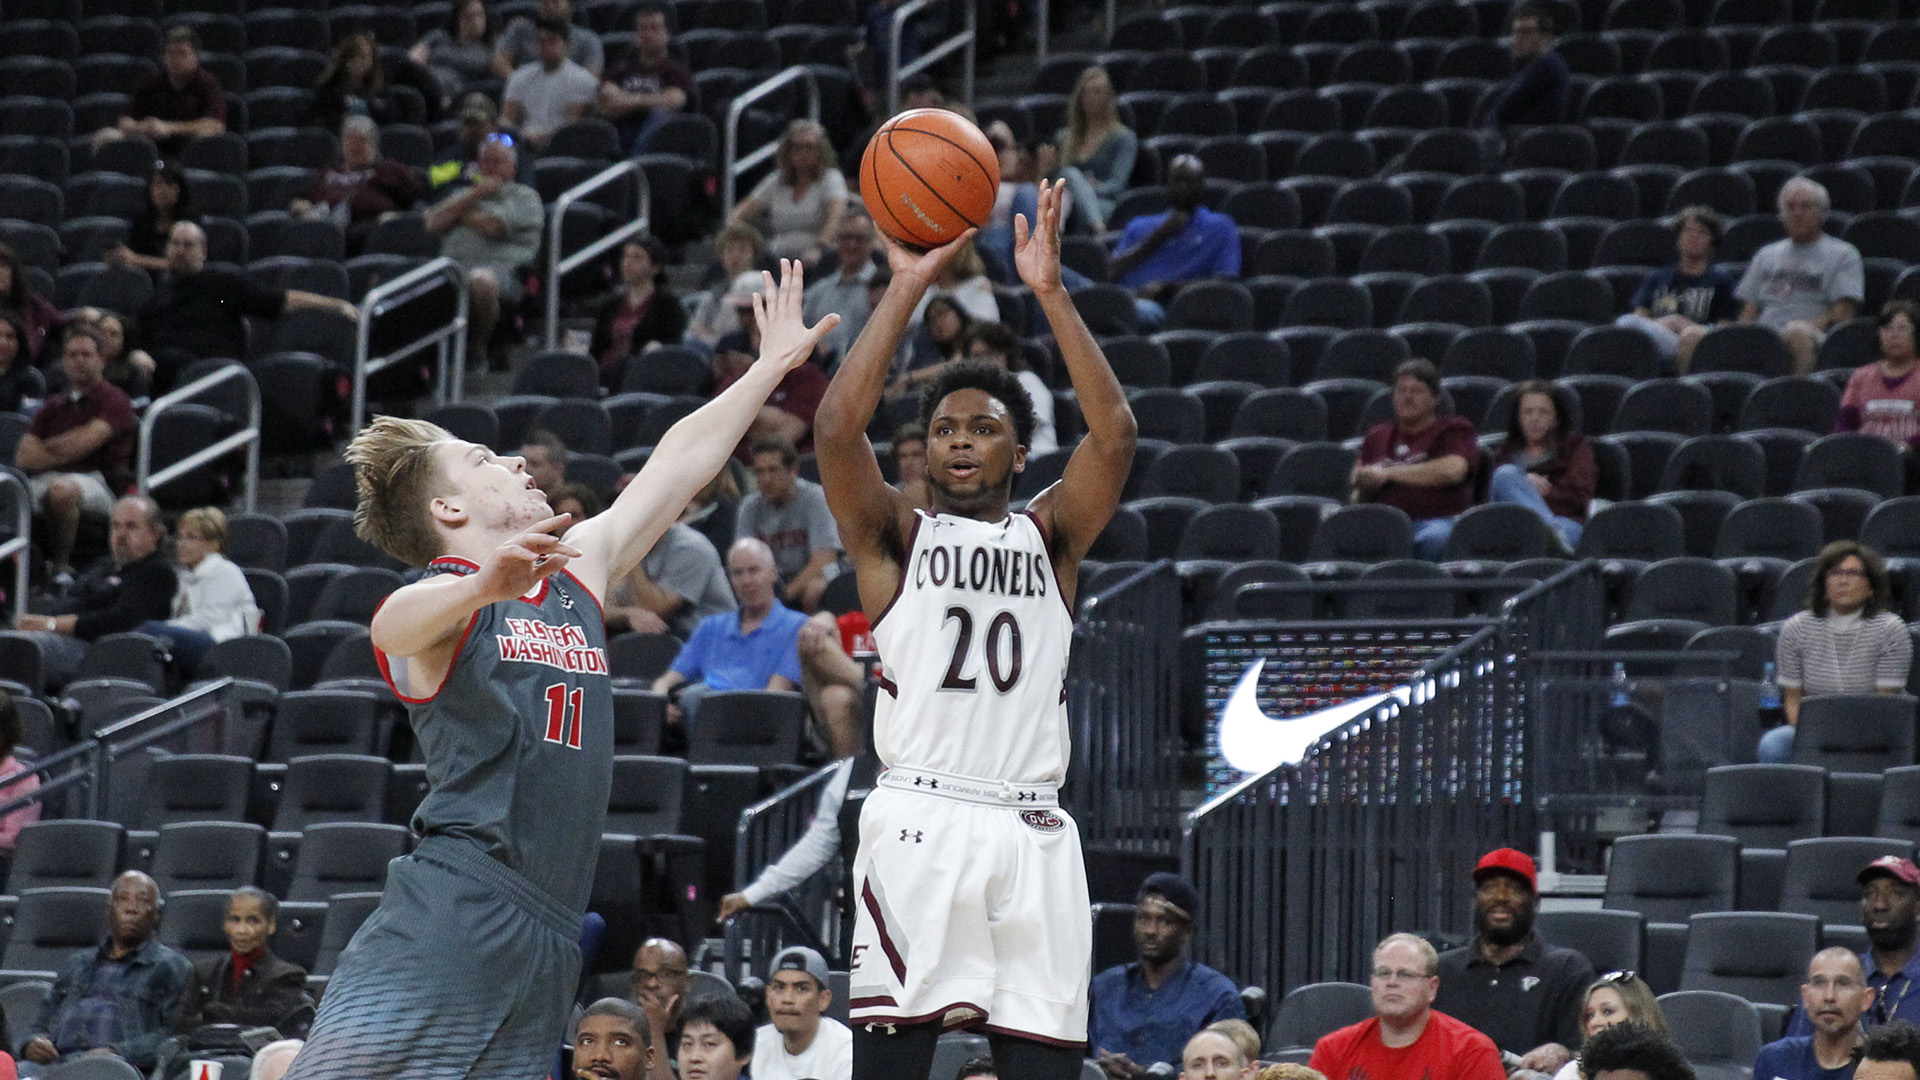 Men's Basketball Fall to Eastern Washington in Las Vegas